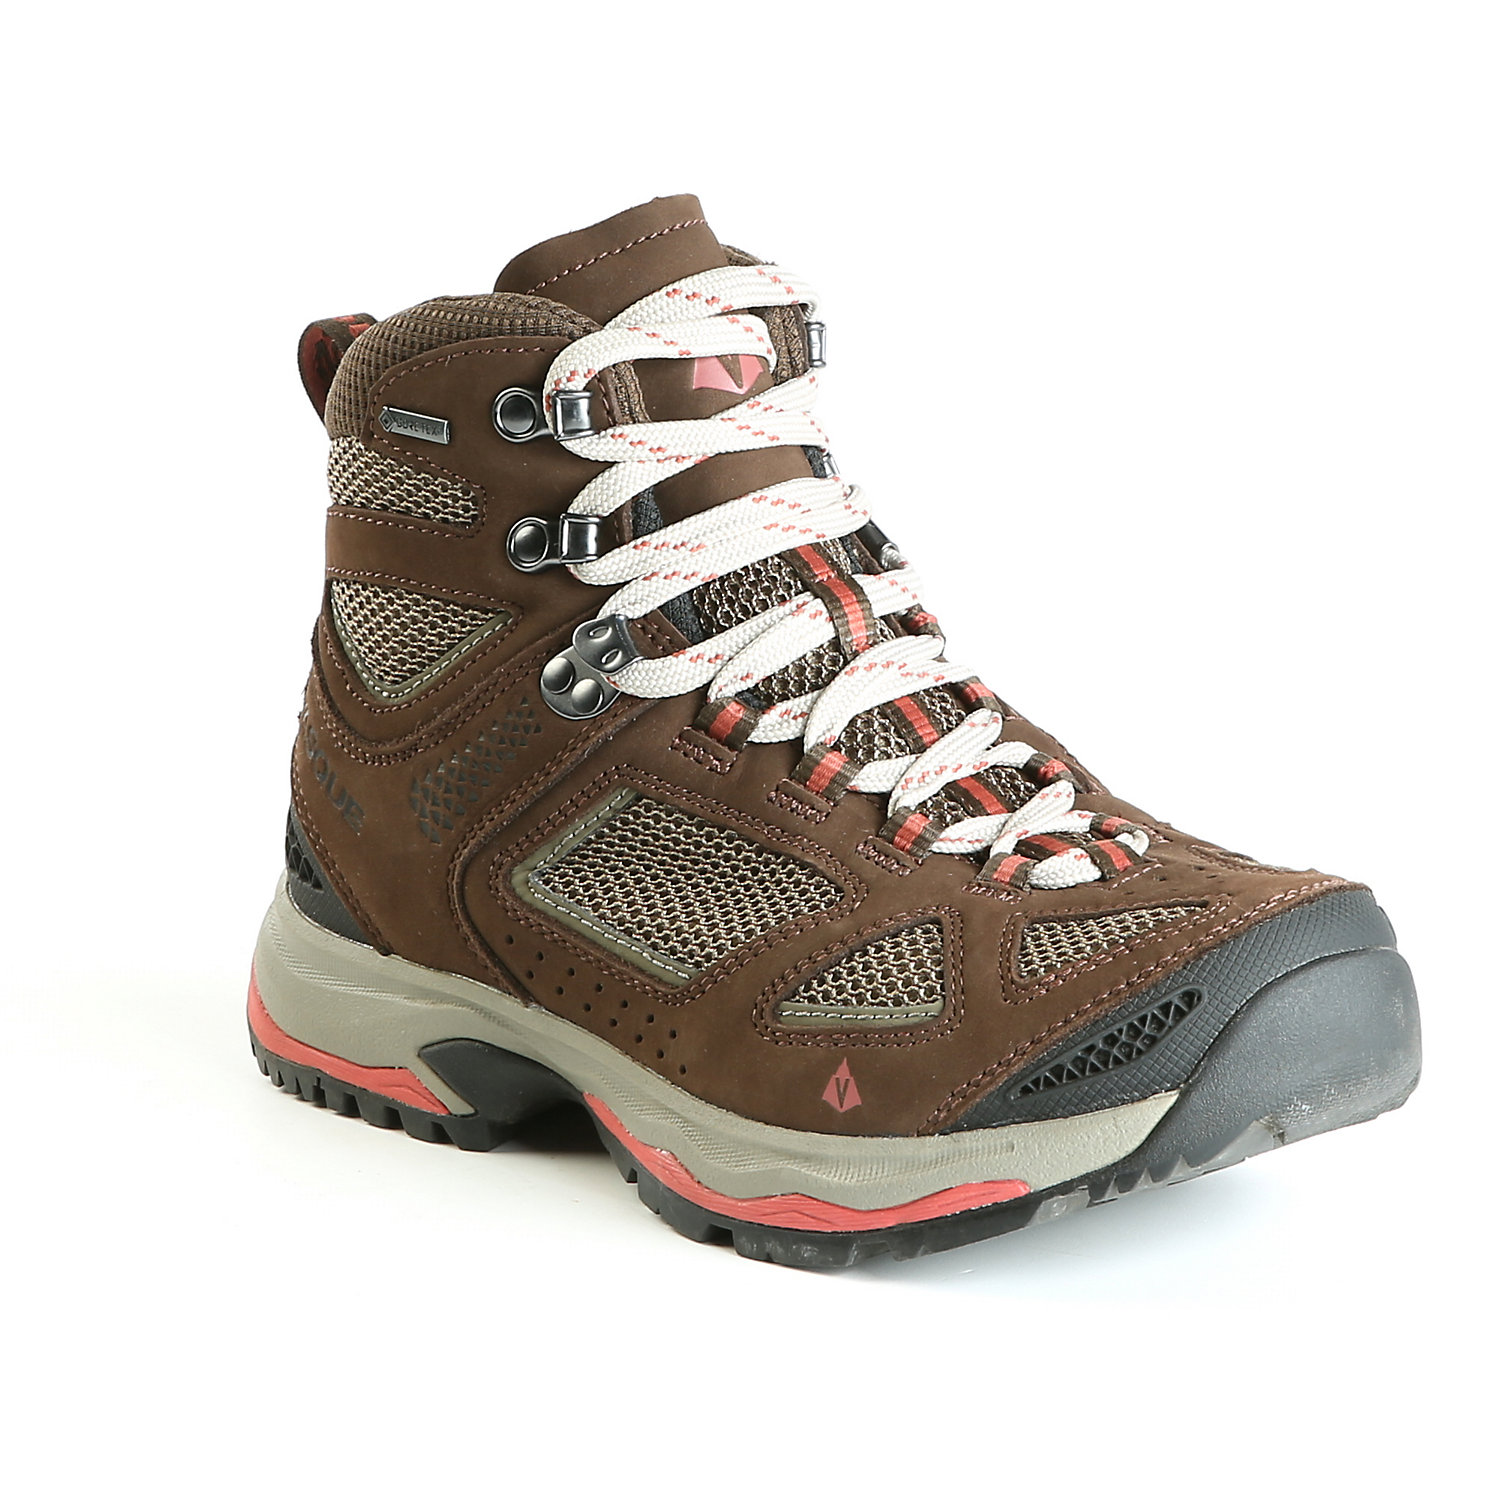 0965fc3ada0 Vasque Women's Breeze III GTX Boot